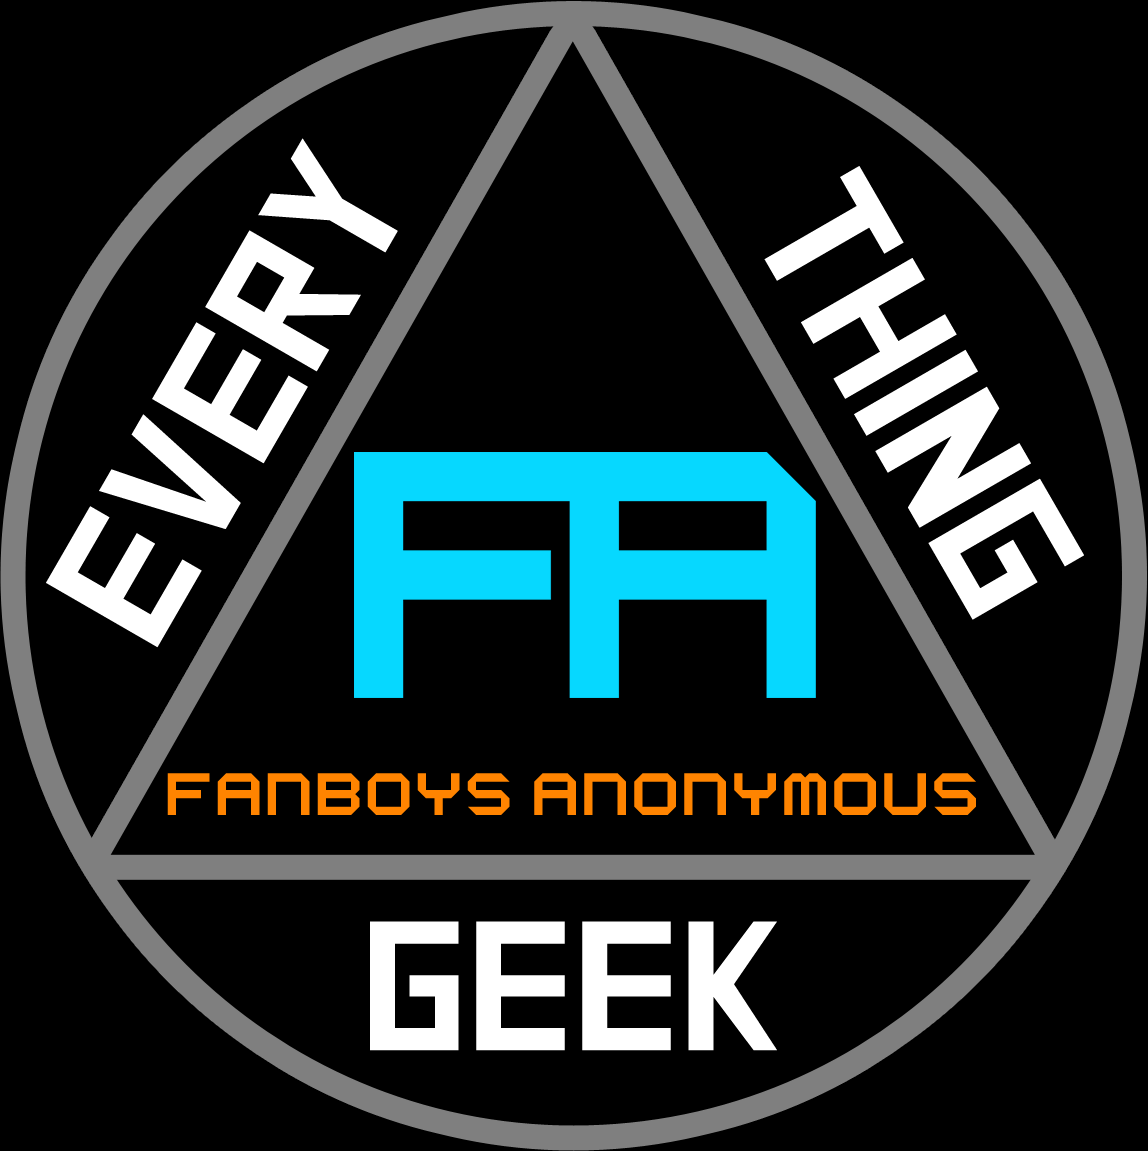 Follow Fanboys Anonymous for geek news, reviews, and blogs